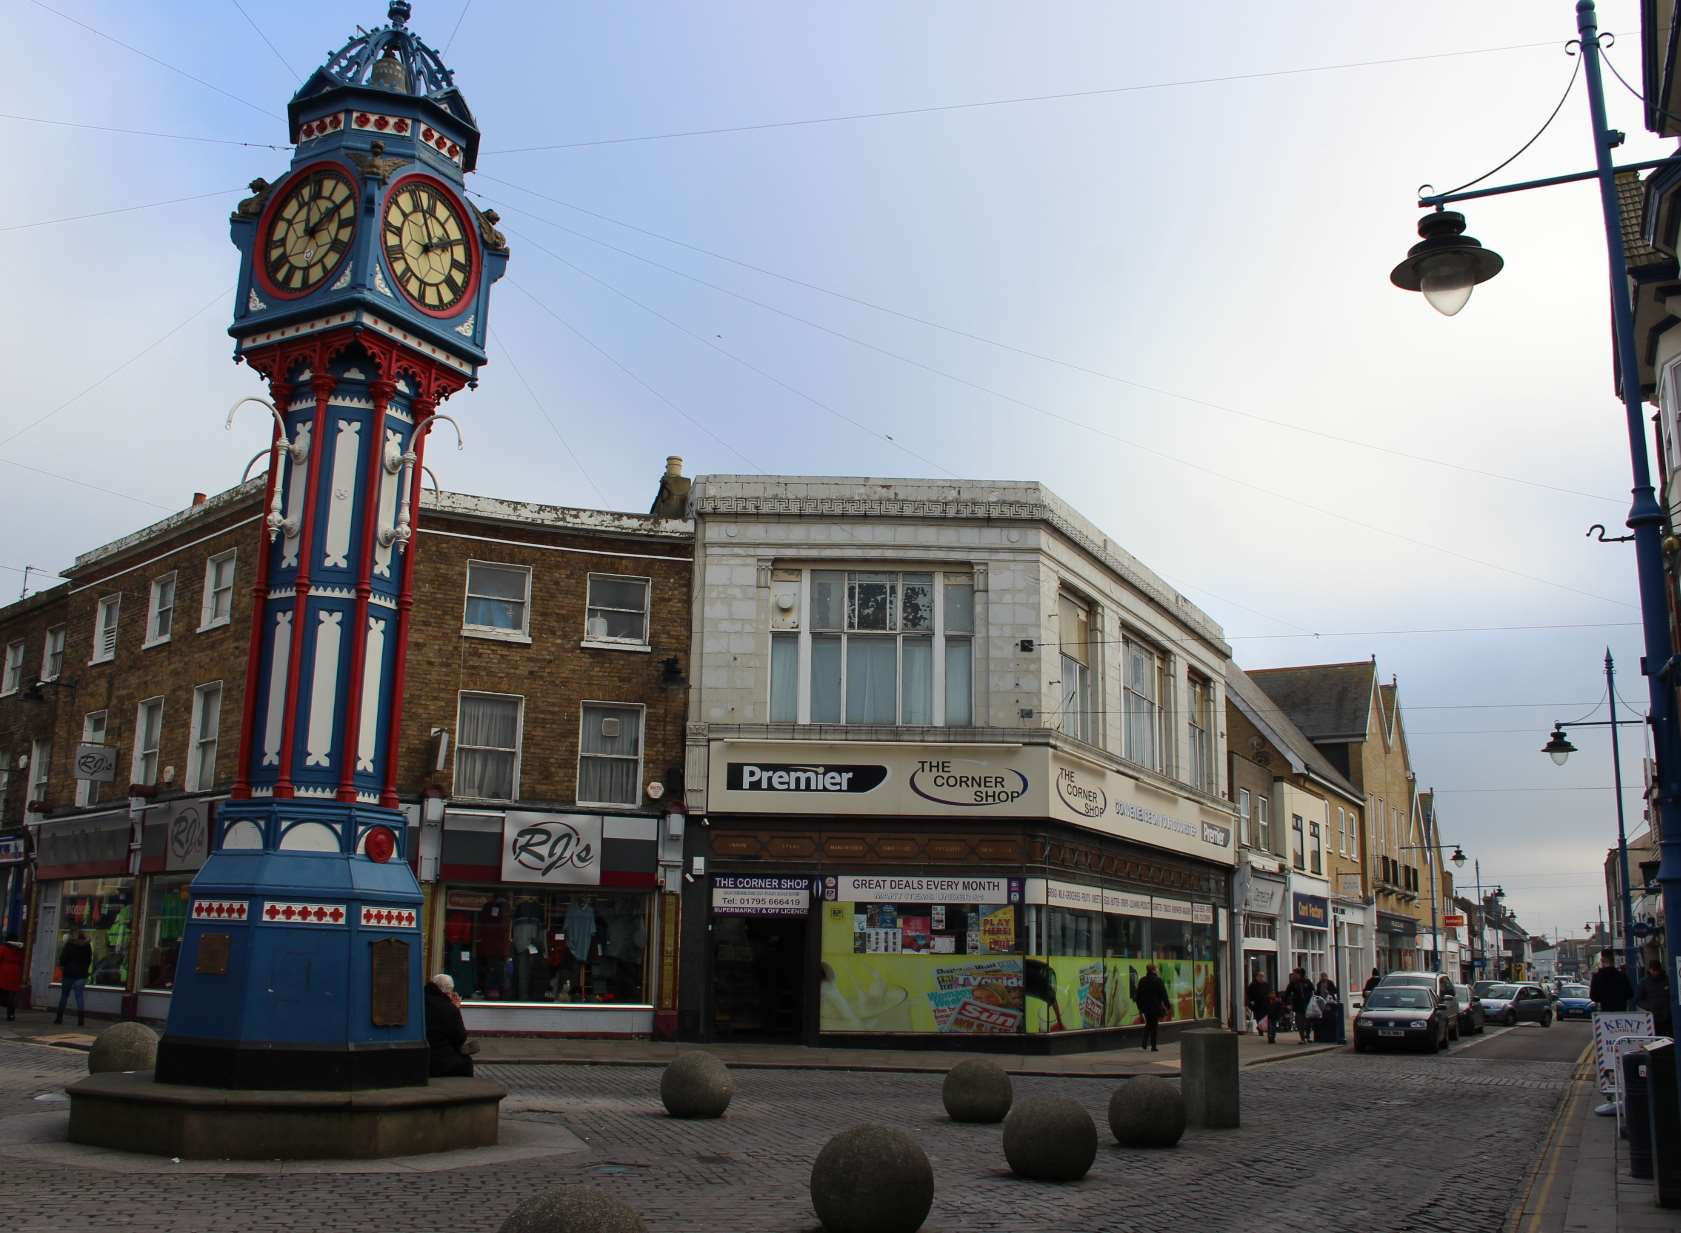 The Premier Corner Shop by Sheerness Clock Tower